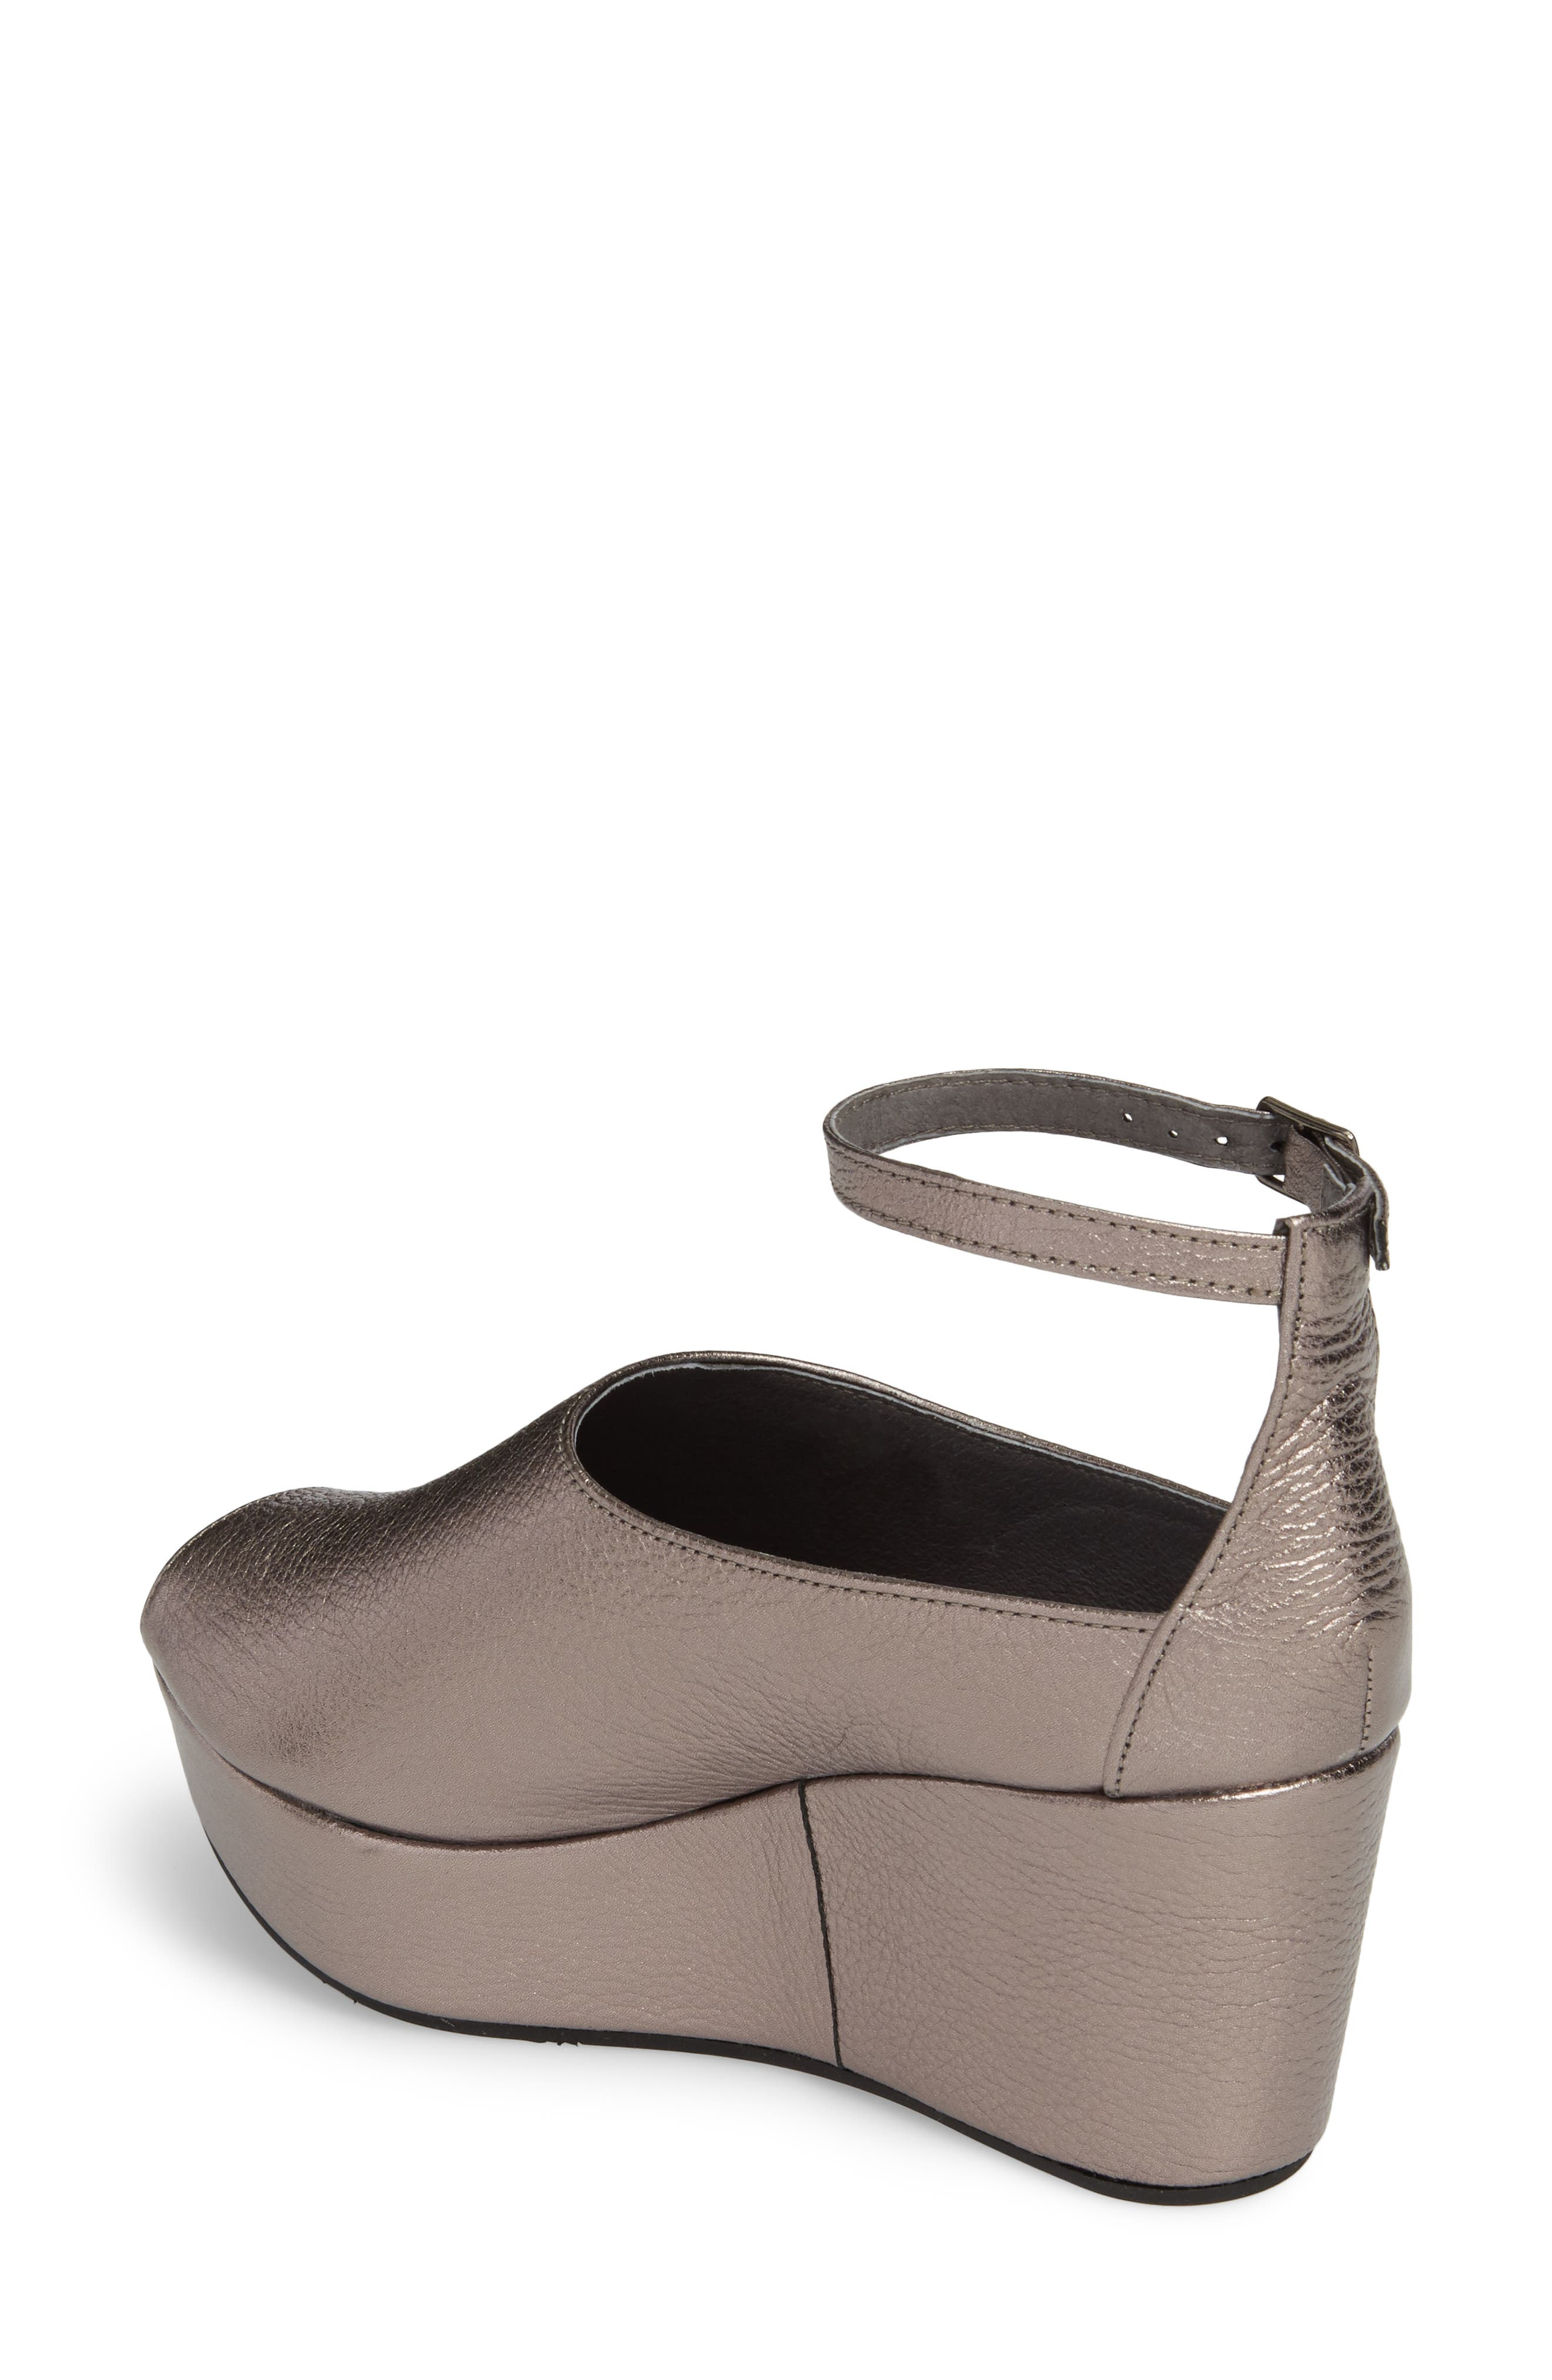 Walter Ankle Strap Wedge Sandal,                             Alternate thumbnail 2, color,                             GUNMETAL LEATHER